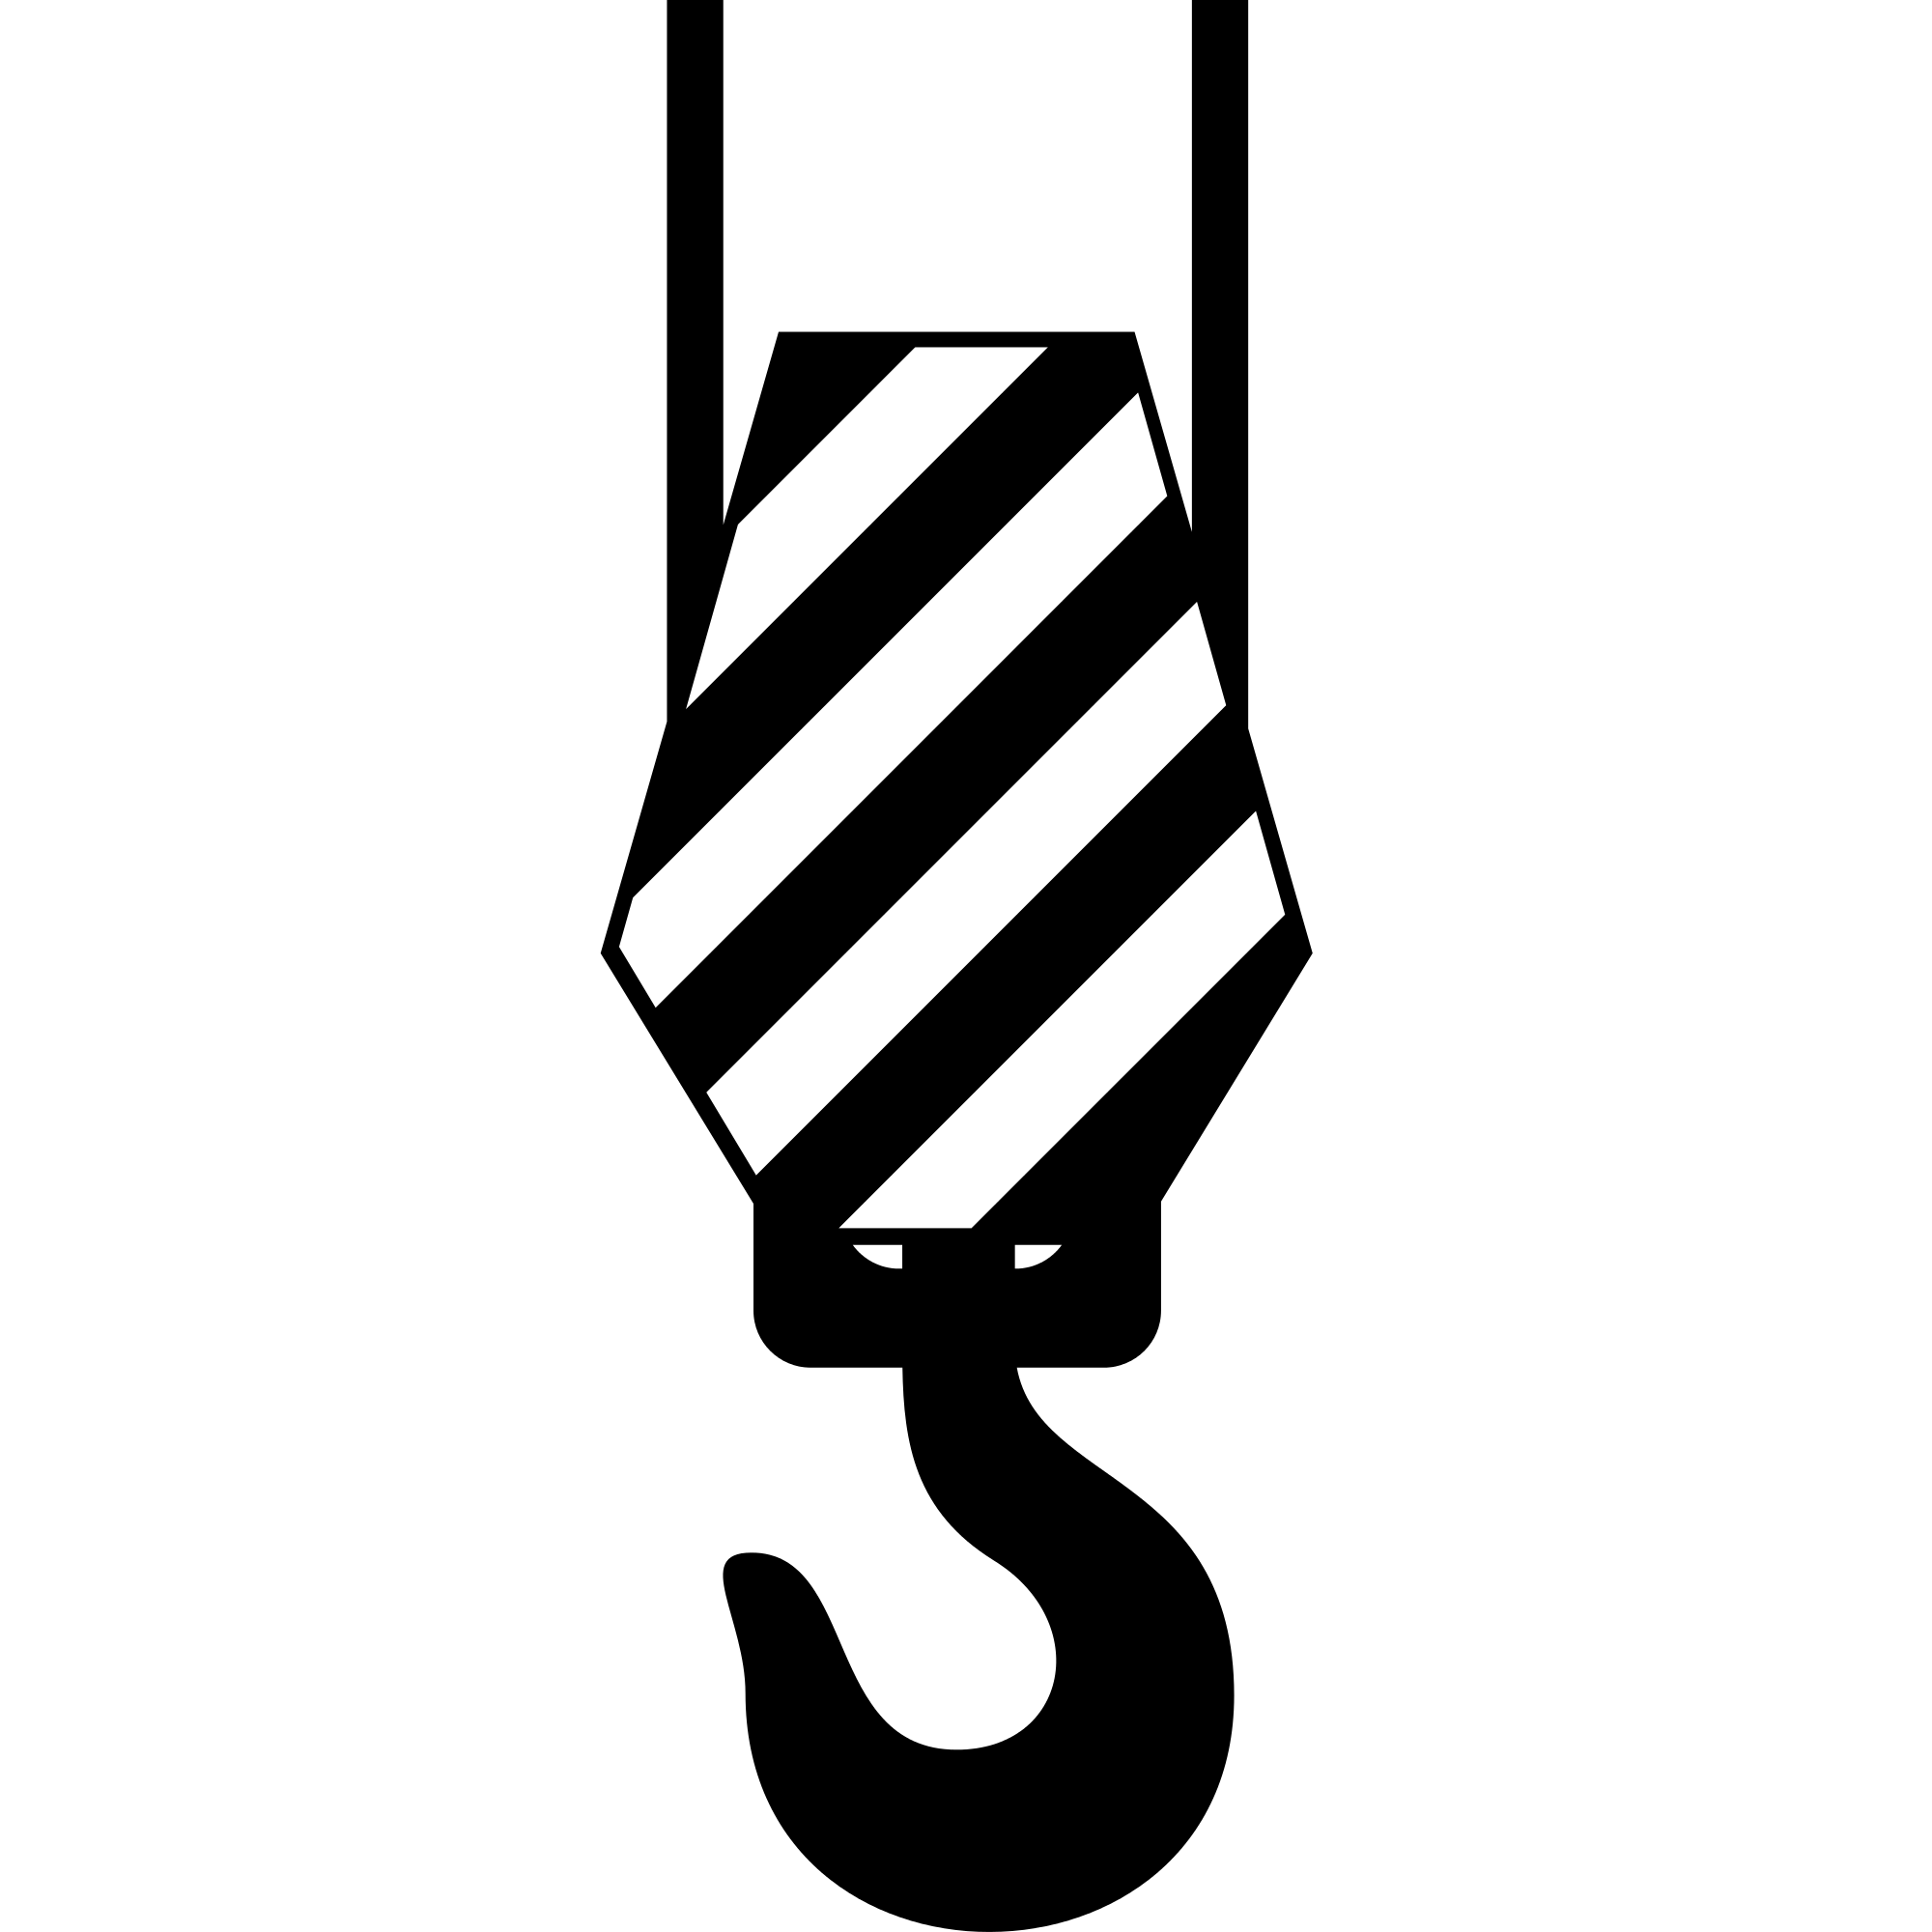 Crane Hook Clipart transparent PNG.